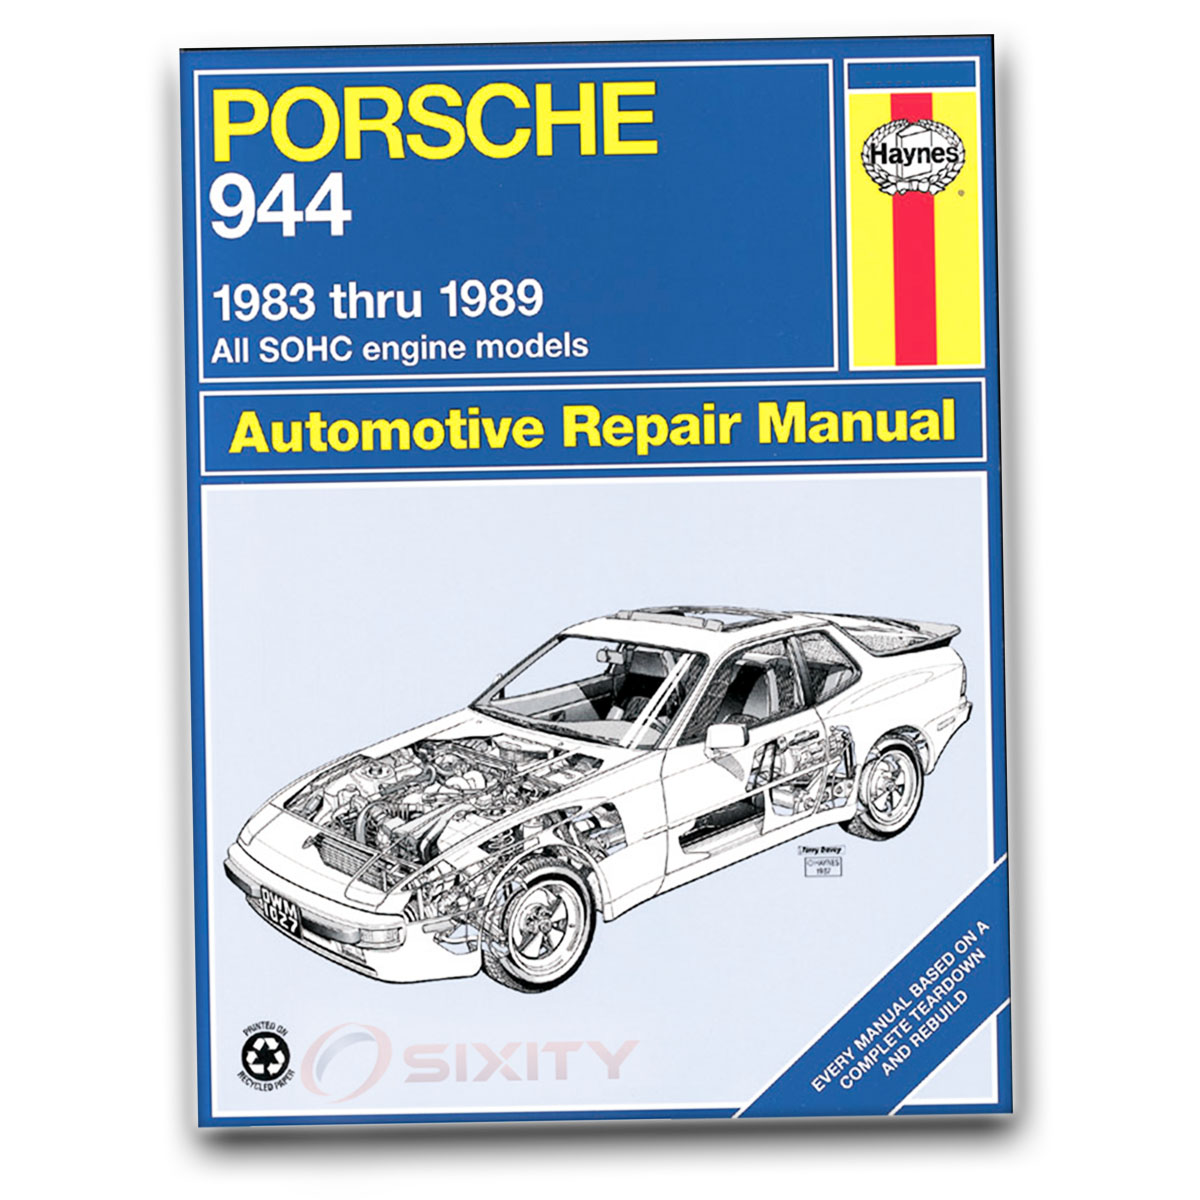 1988 porsche 944 repair manual free owners manual u2022 rh wordworksbysea com Haynes Manual for Quads haynes manual reviews